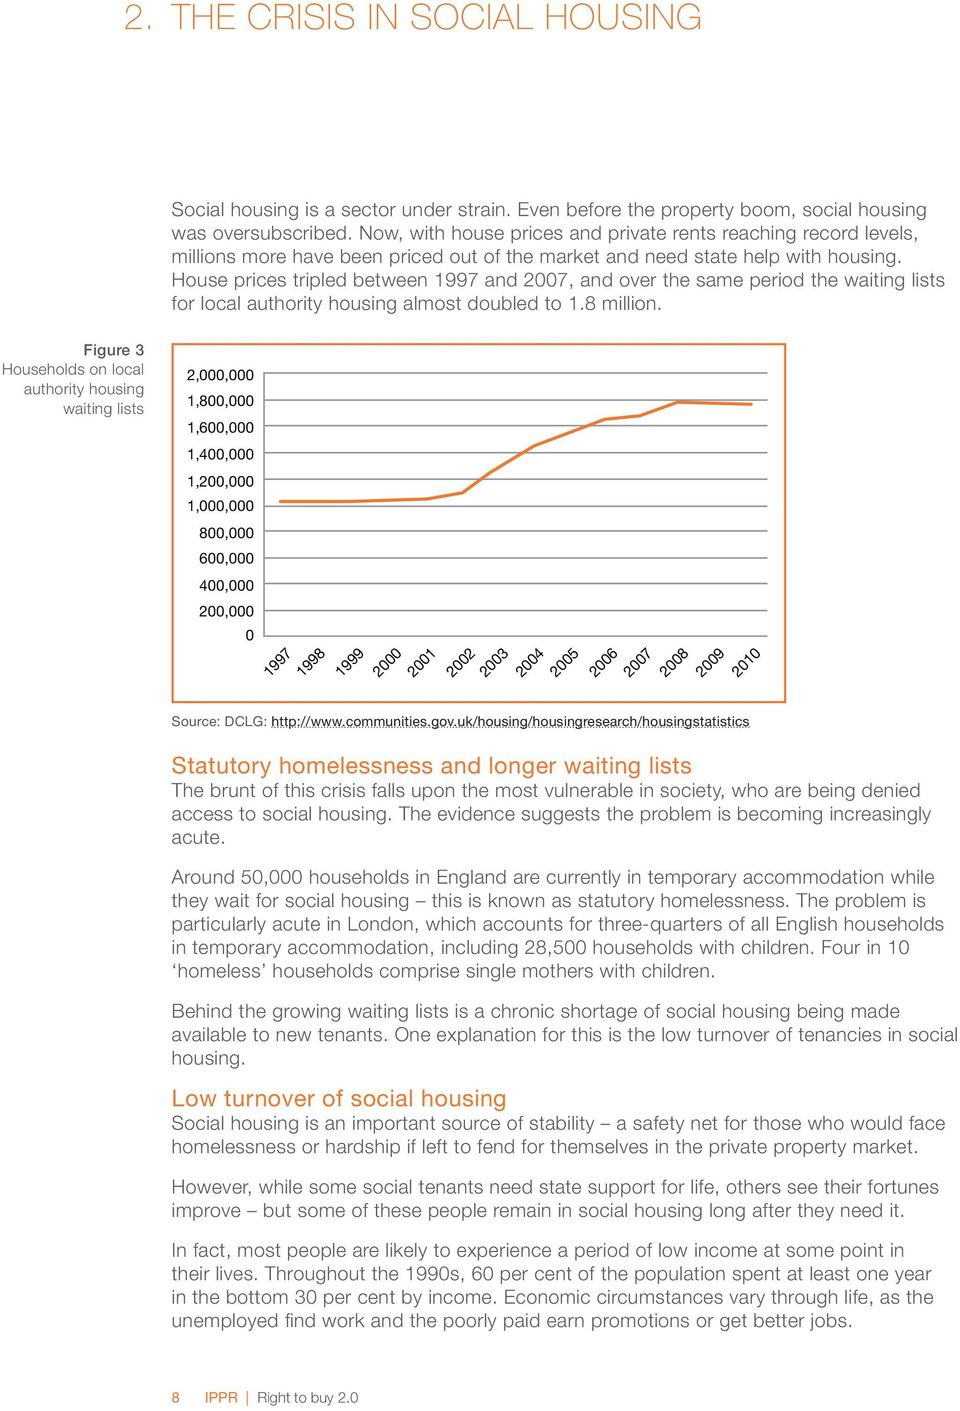 House prices tripled between 1997 and 2007, and over the same period the waiting lists for local authority housing almost doubled to 1.8 million.